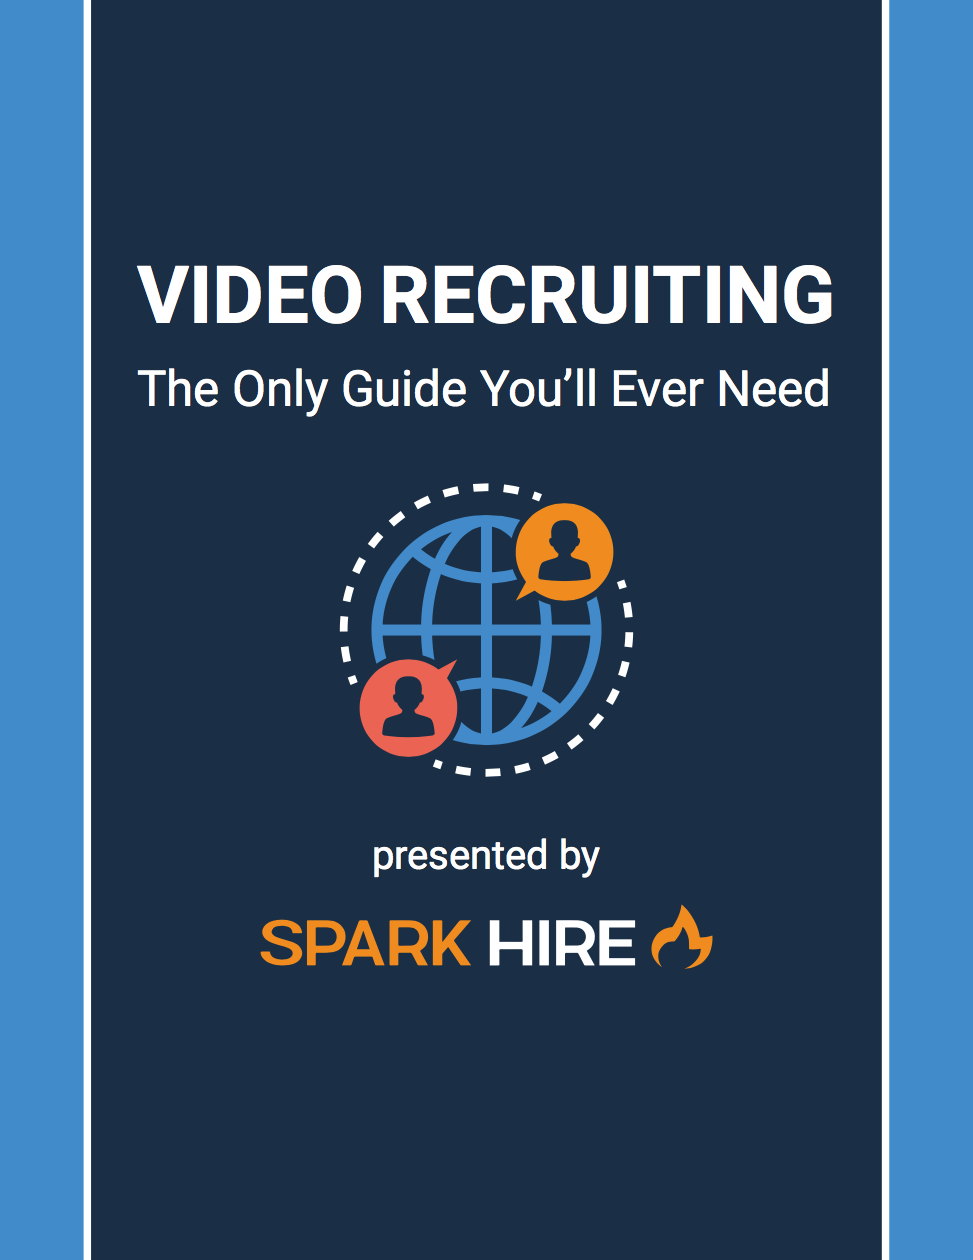 Video Recruiting - The Only Guide You'll Ever Need